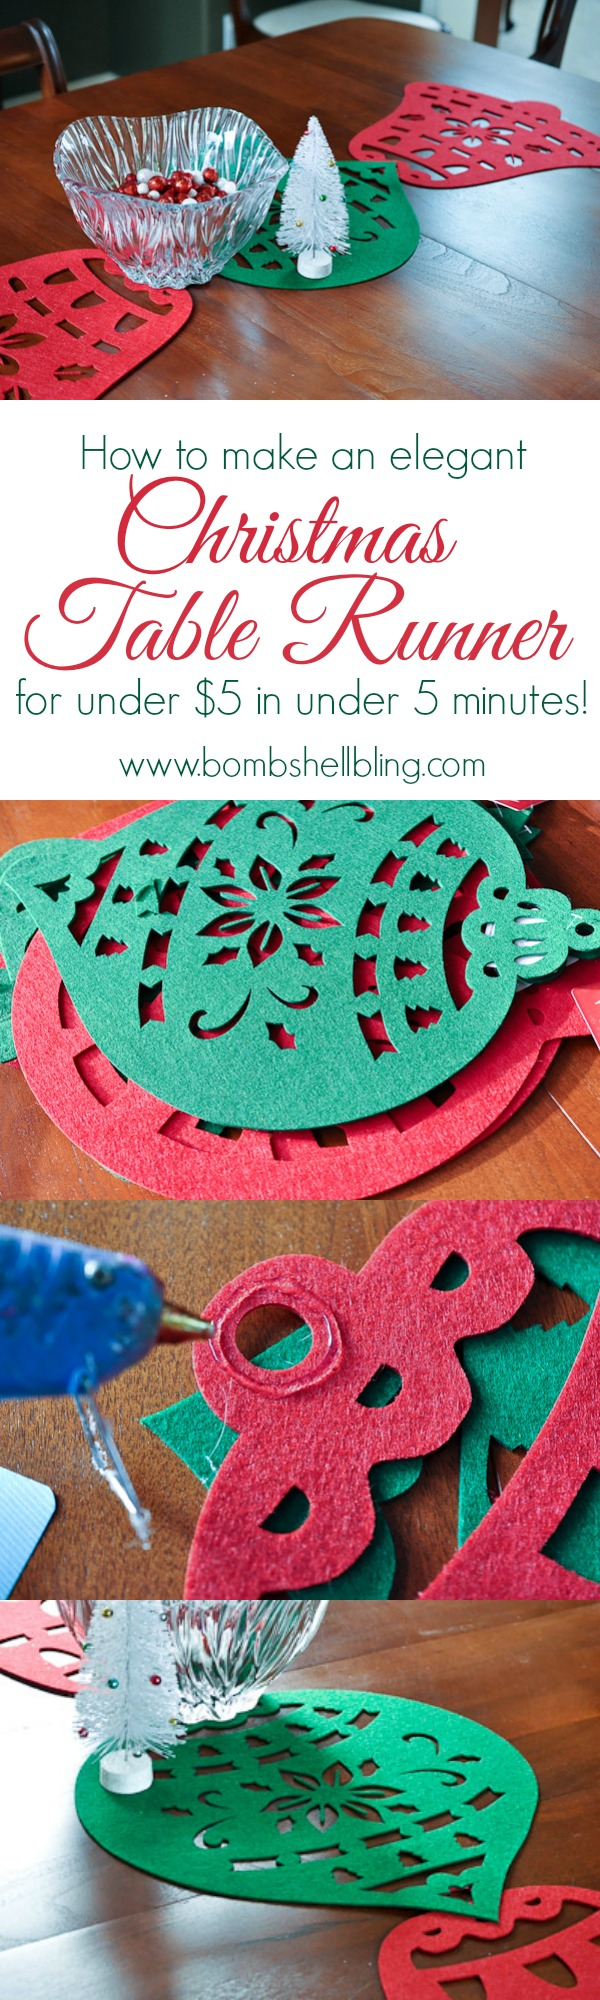 Make a festive table runner for under $5 in under 5 minutes! WOW!